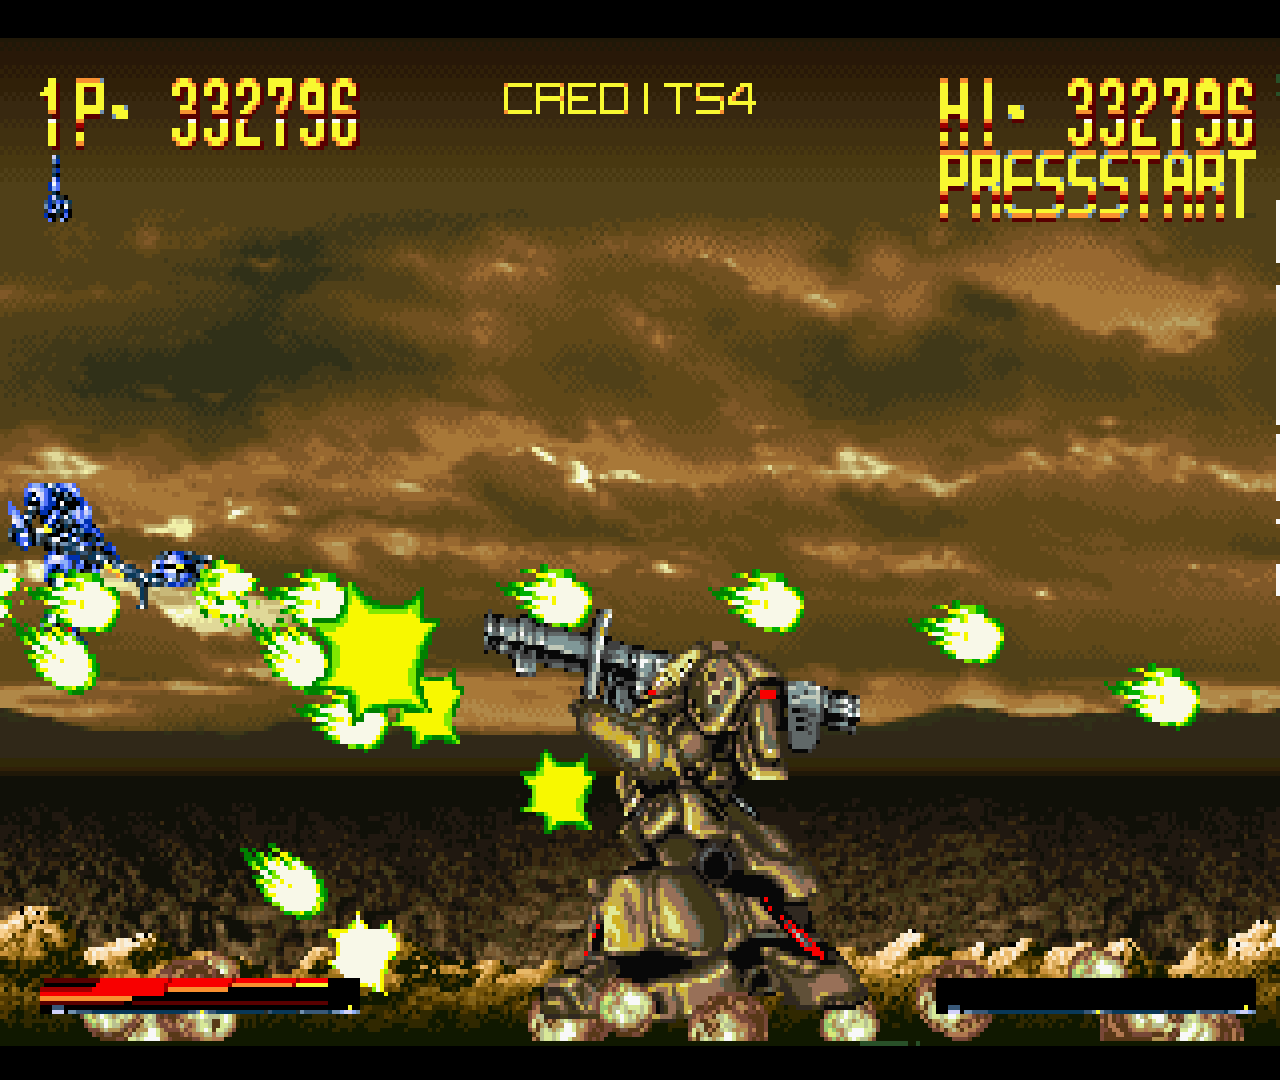 Figure 13 - In this game, it's not just the enemies who can shoot hundreds of bullets